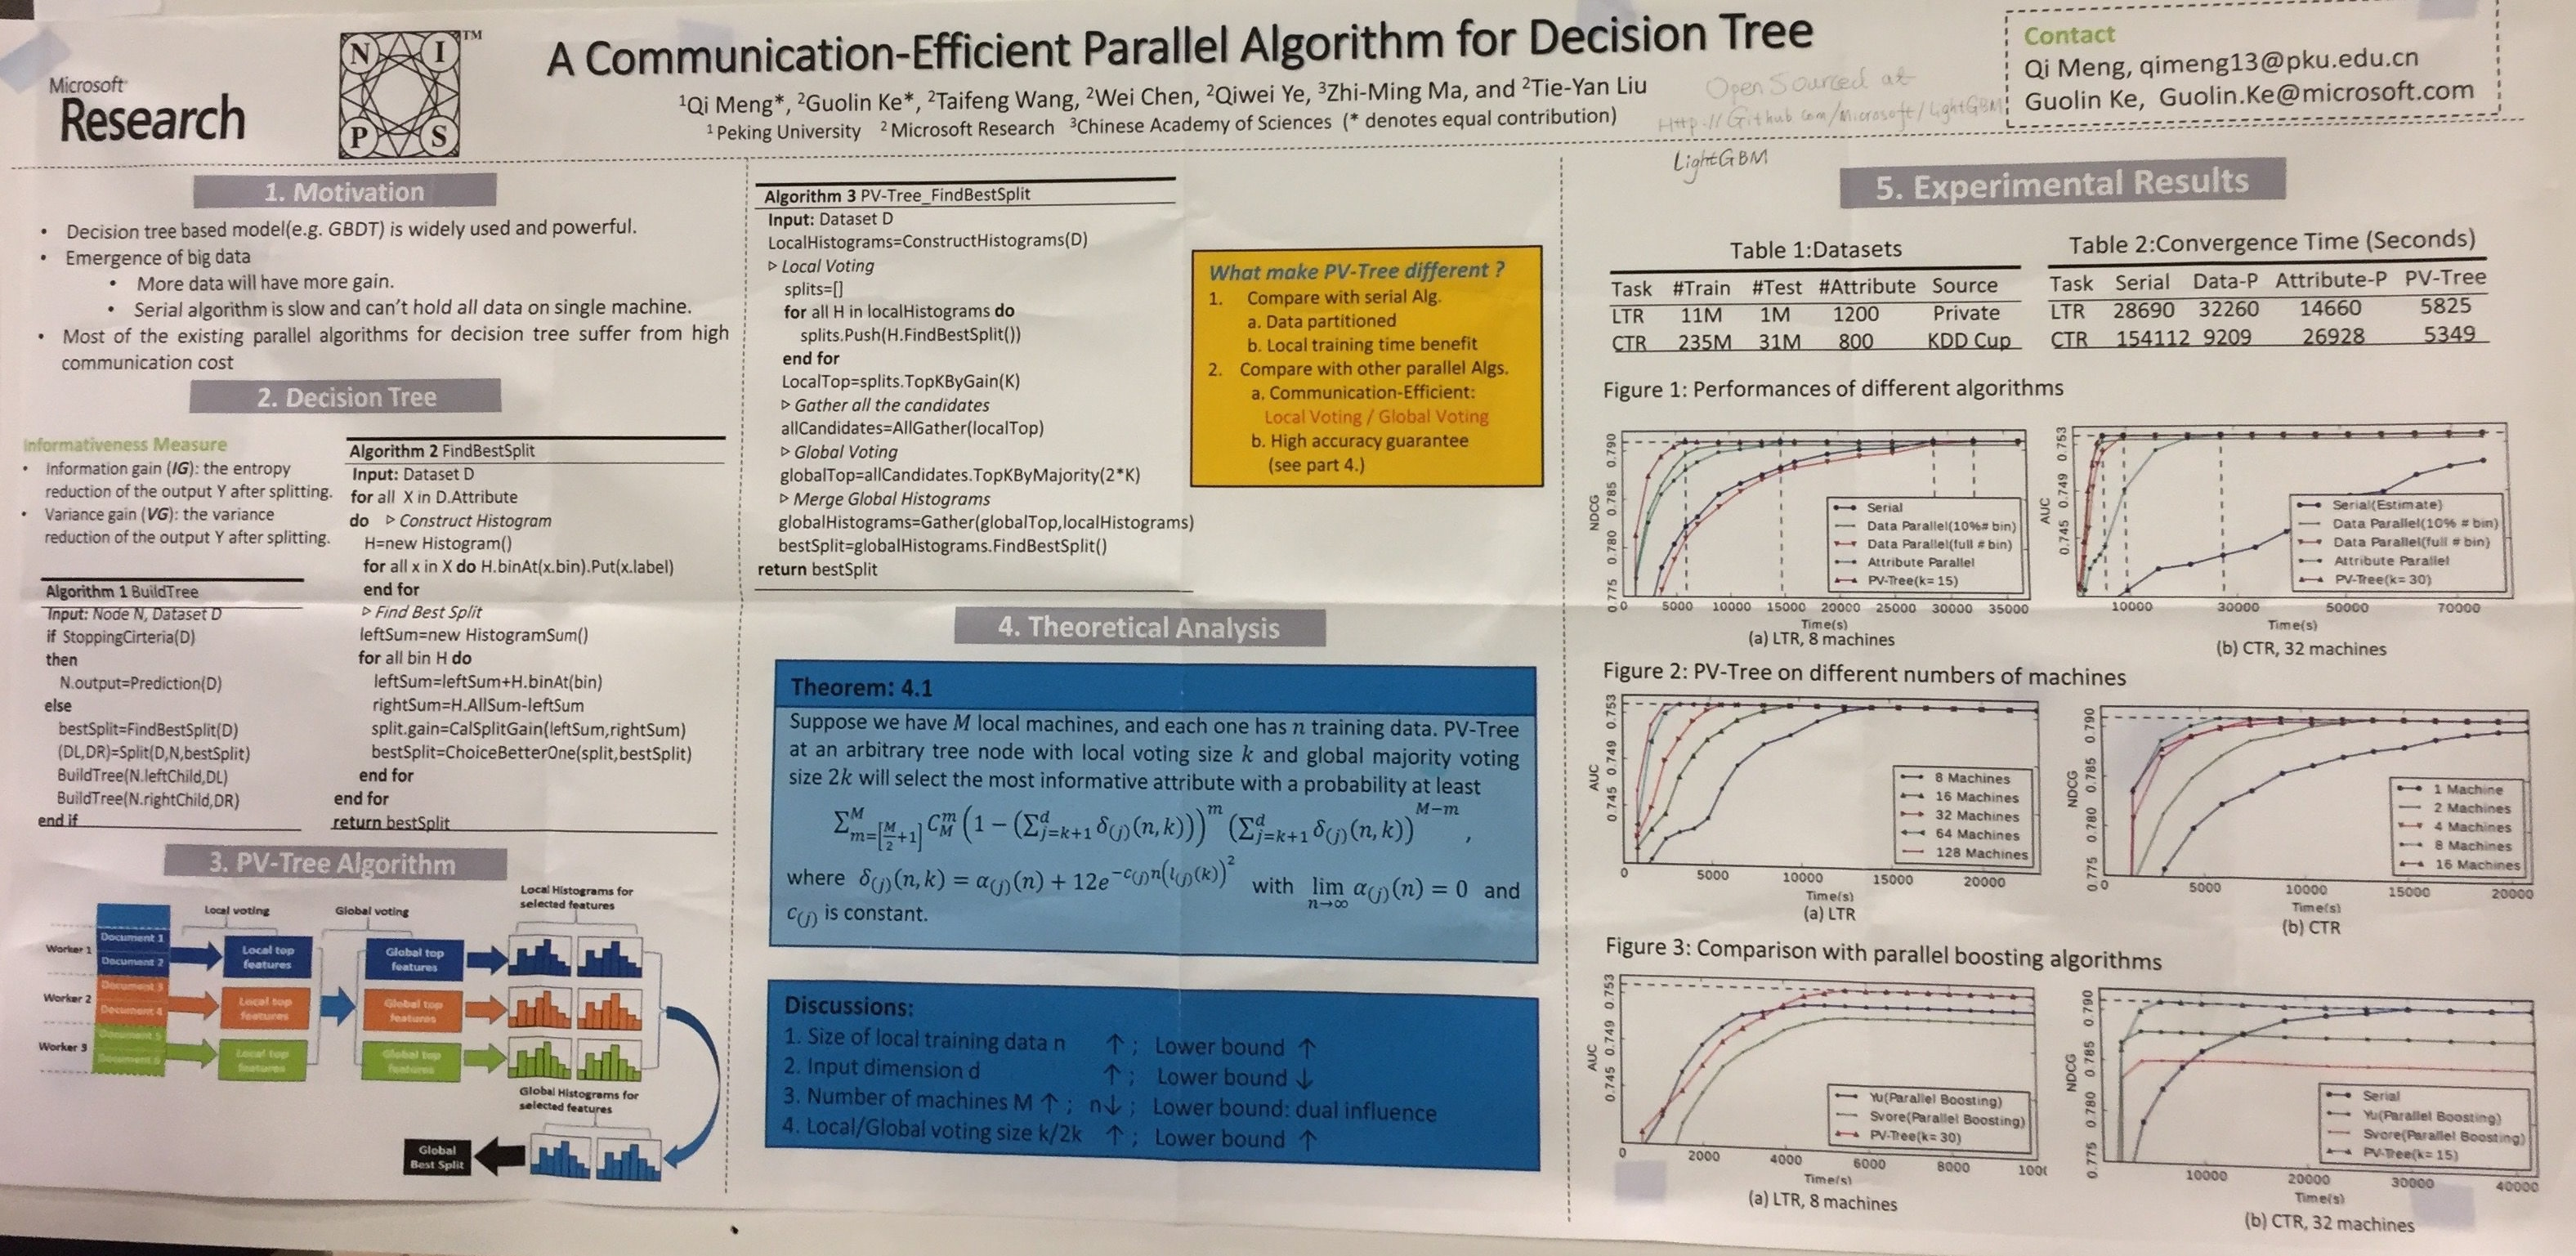 Meng_A_Communication-Efficient_Parallel_Algorithm_for_Decision_Tree.jpg